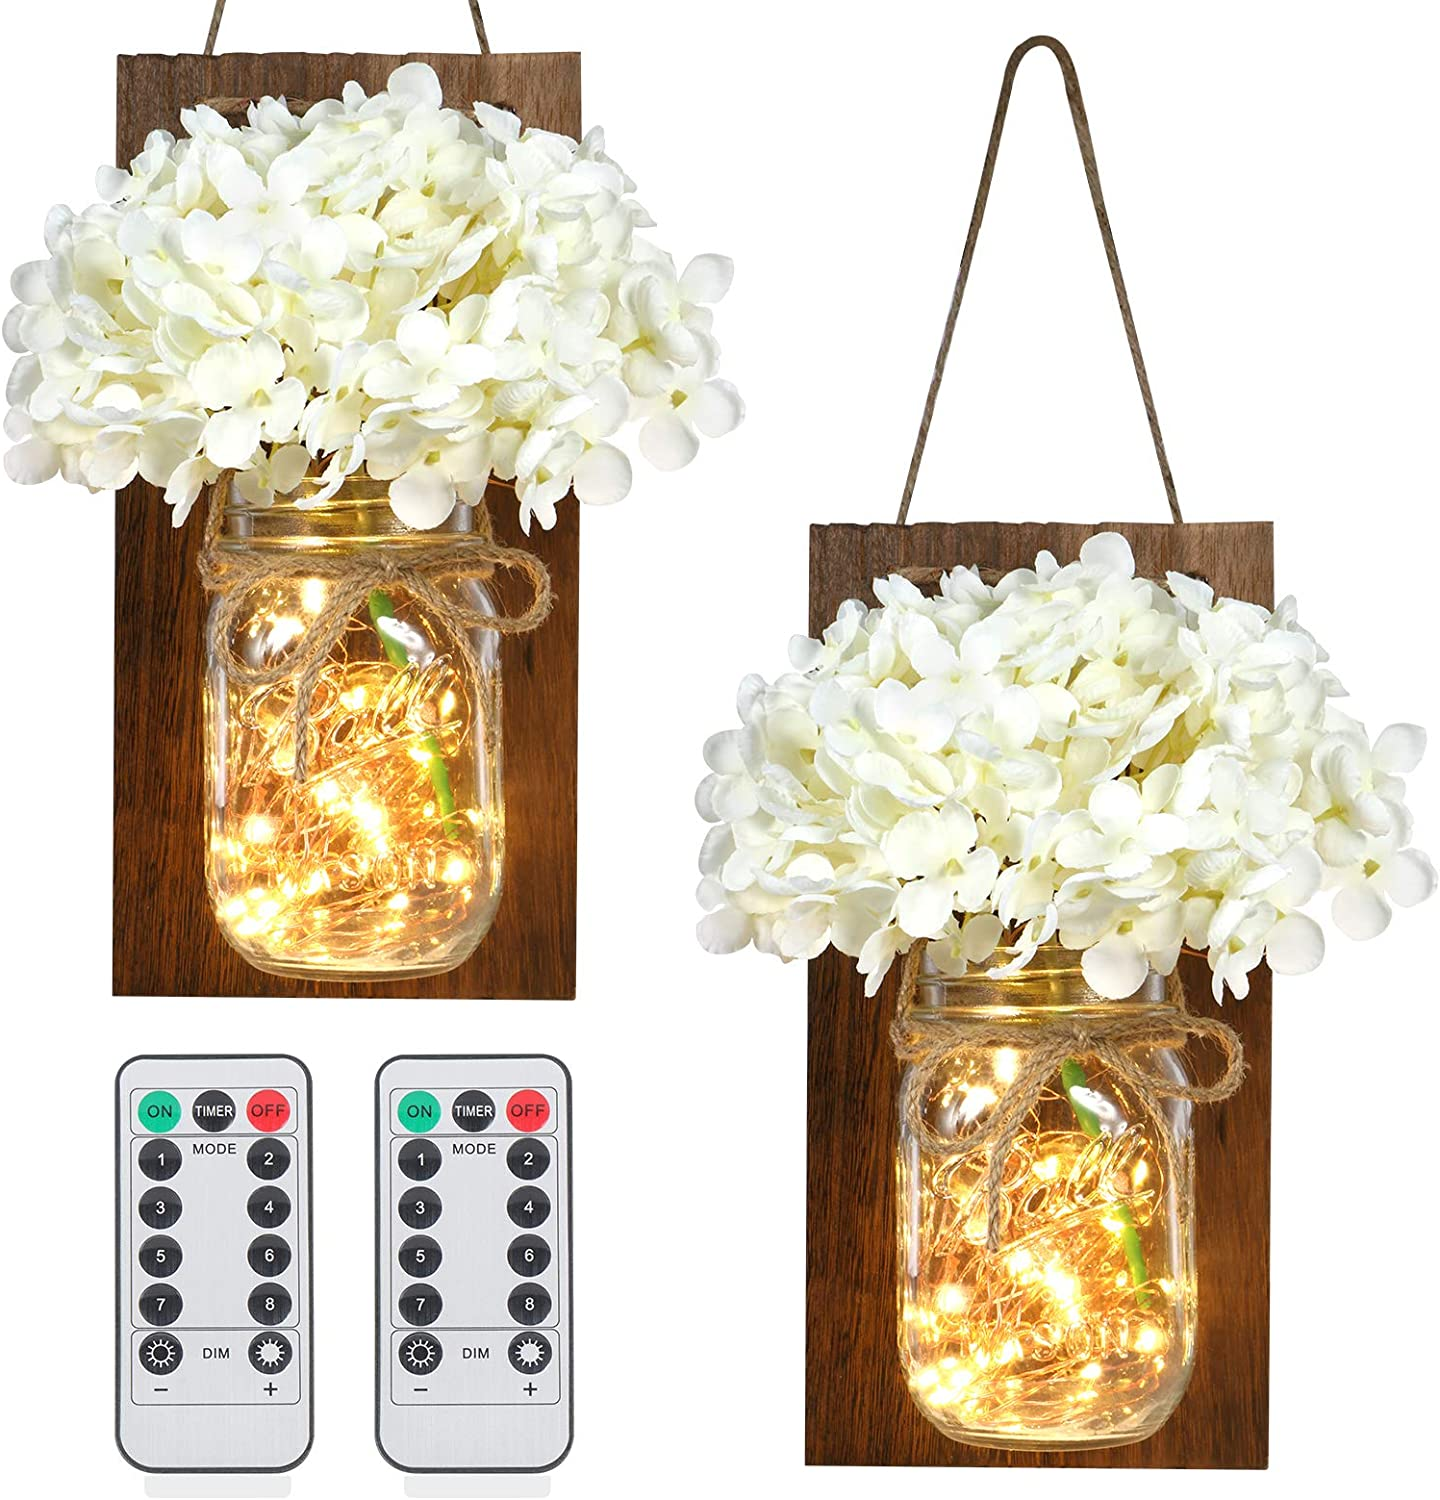 ODOM Rustic Wall Decor, Hanging Mason Jar Sconces with LED Fairy Lights and Milky White Silk Hydrangea Flowers for Kitchen, Bathroom, Bedroom, Living room, Farmhouse Home Wall Art Decor (Set of 2)